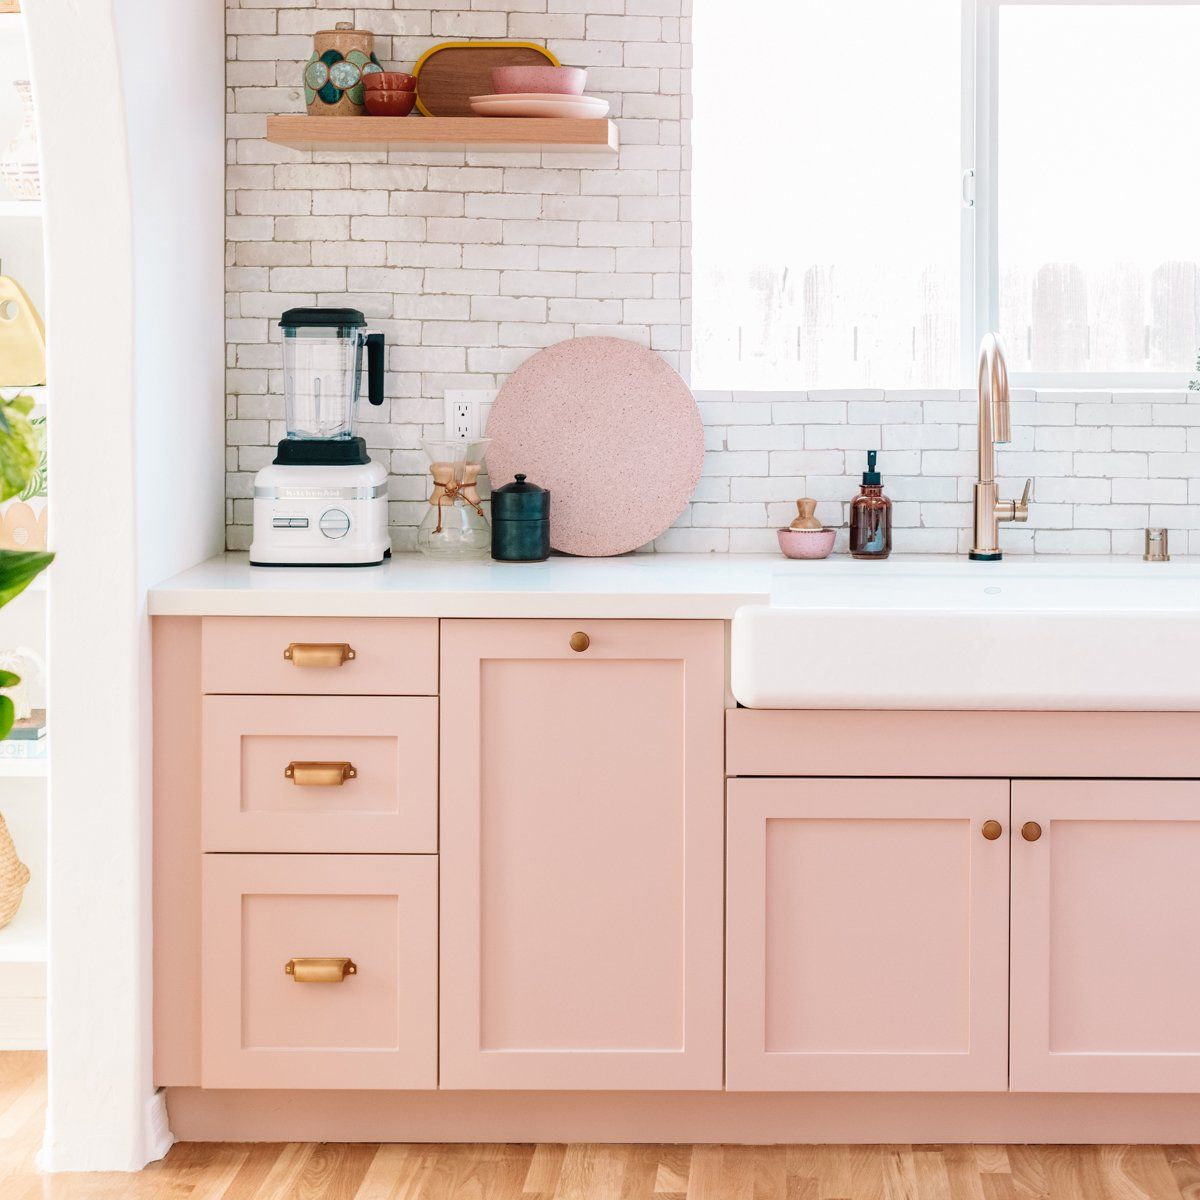 Beautiful Soft Blush Kitchen from Studio DIY - Eclectic kitchen, Kitchen trends, Modern kitchen, Kitchen renovation, Kitchen design, Kitchen remodel - Design Studio DIY Photographer Jeff Mindell Location Los Angeles, CA Paint color DunnEdwards Galveston Tan